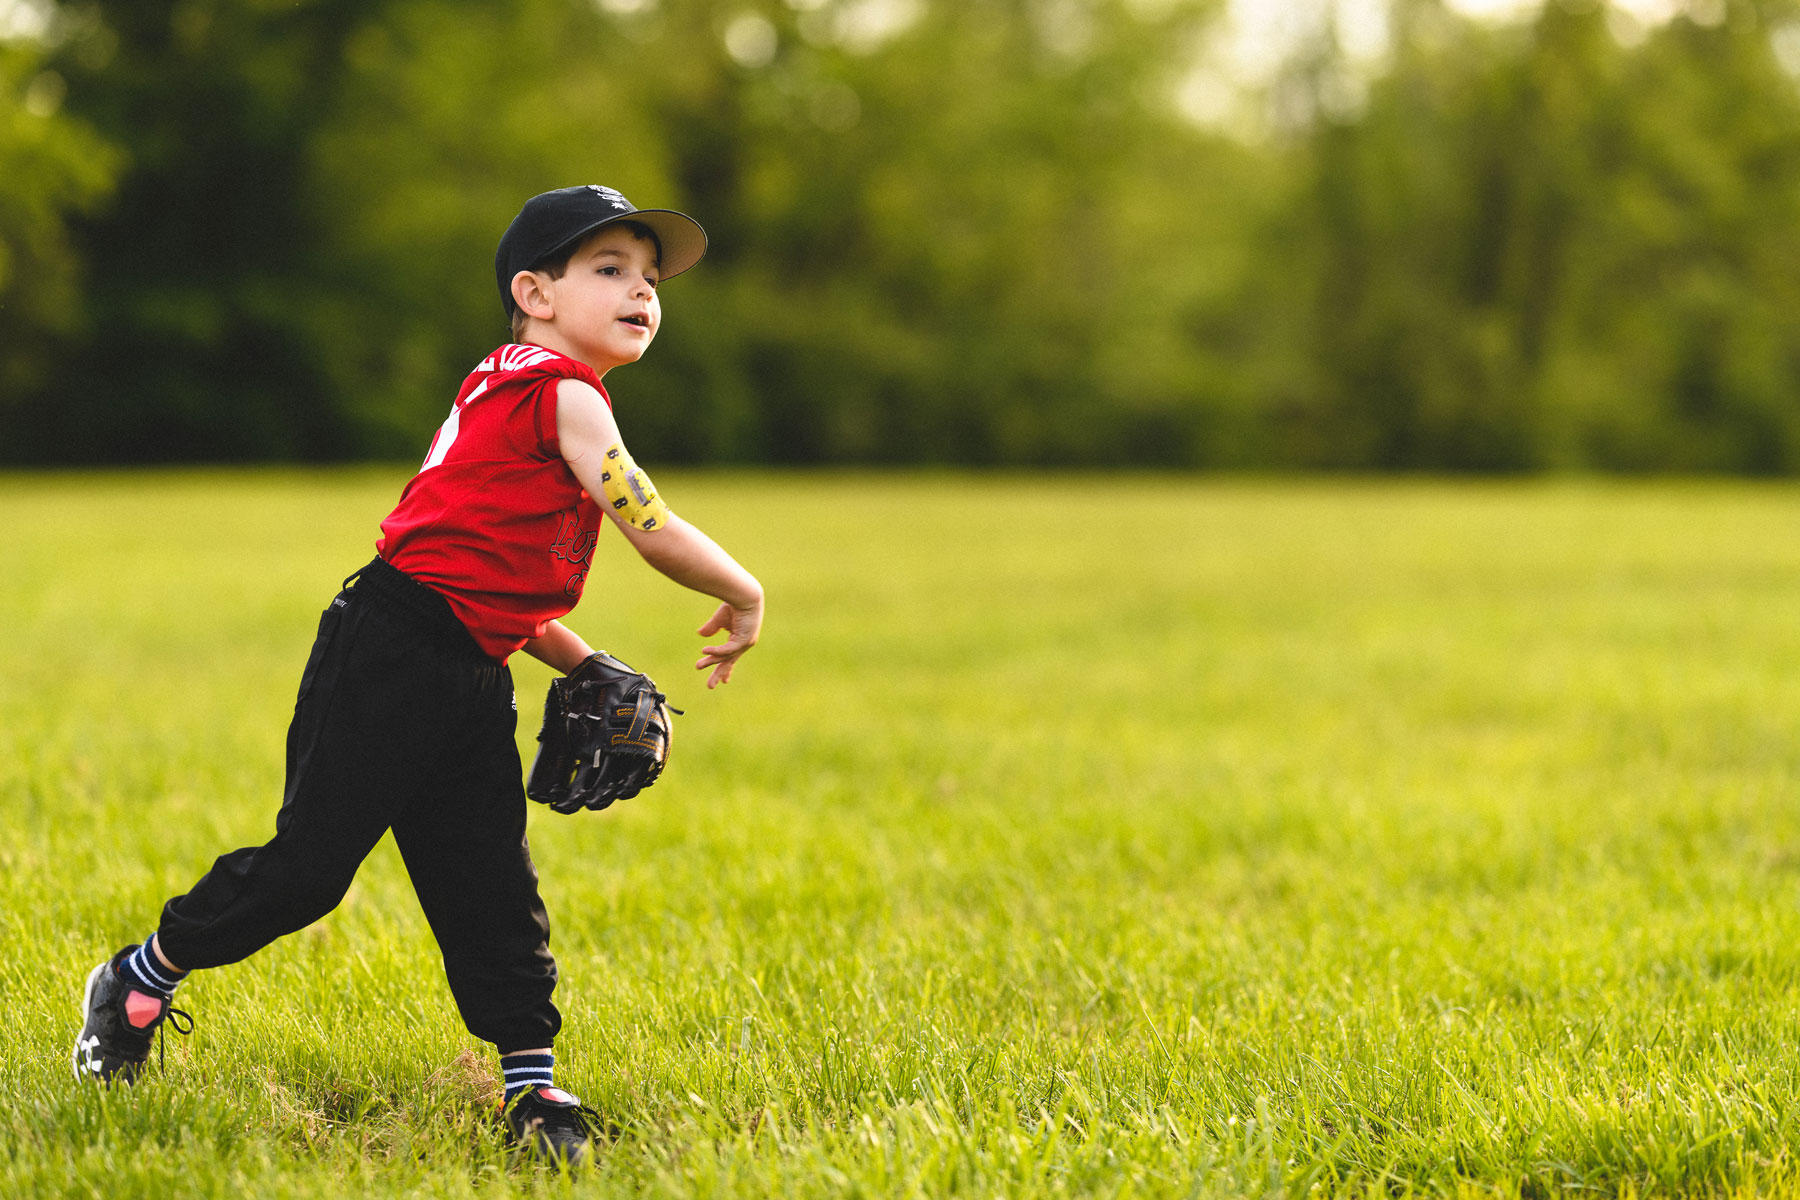 Max throws a baseball in his team uniform. His insulin pump is visible on the back of his upper arm.